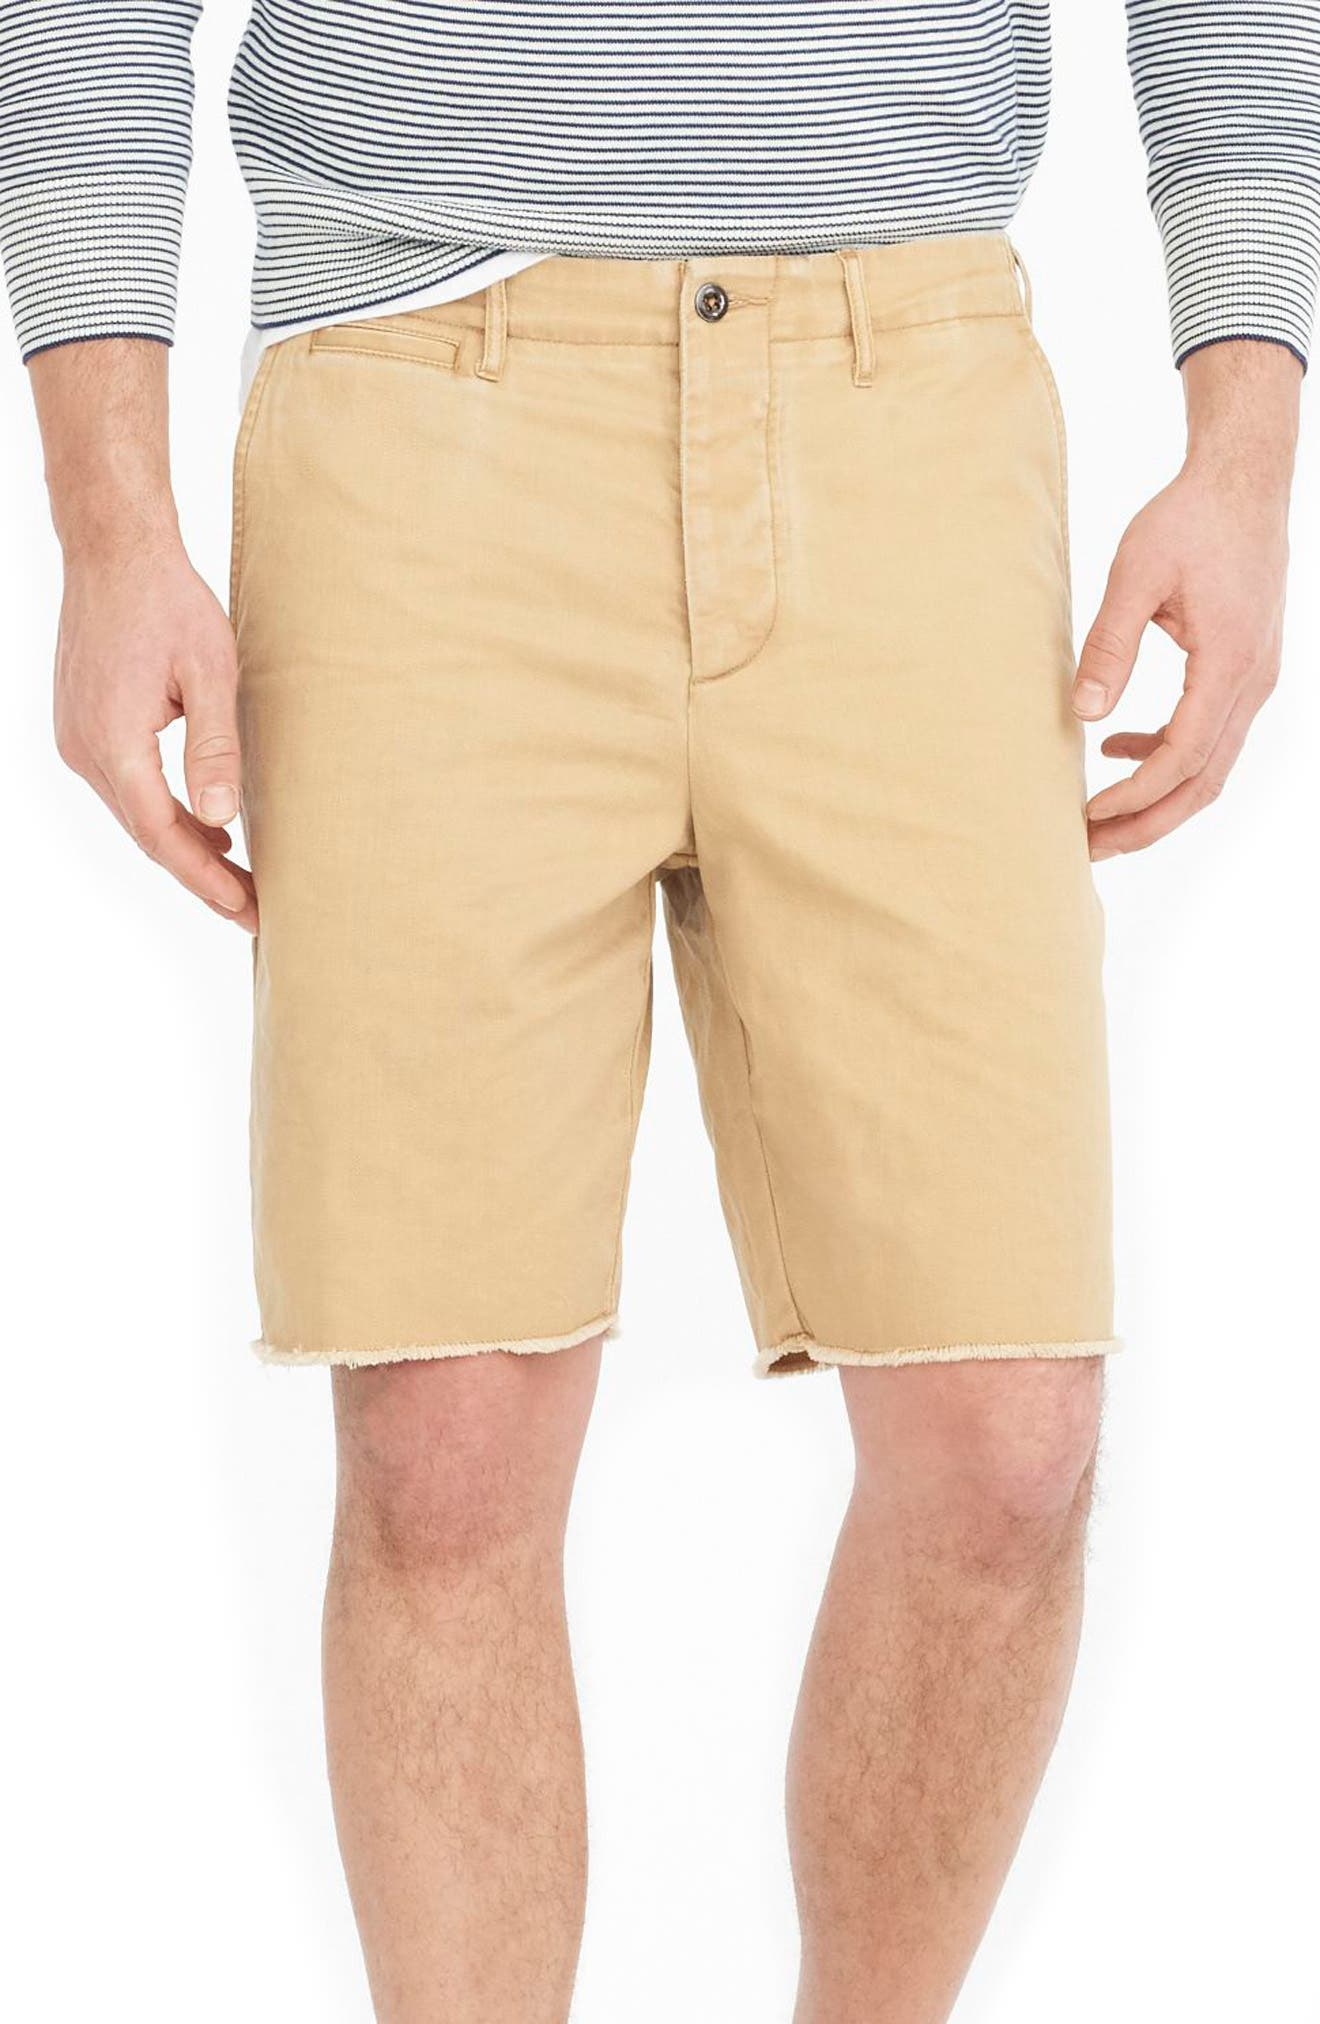 Distressed Officer's Shorts,                             Main thumbnail 1, color,                             Golden Khaki